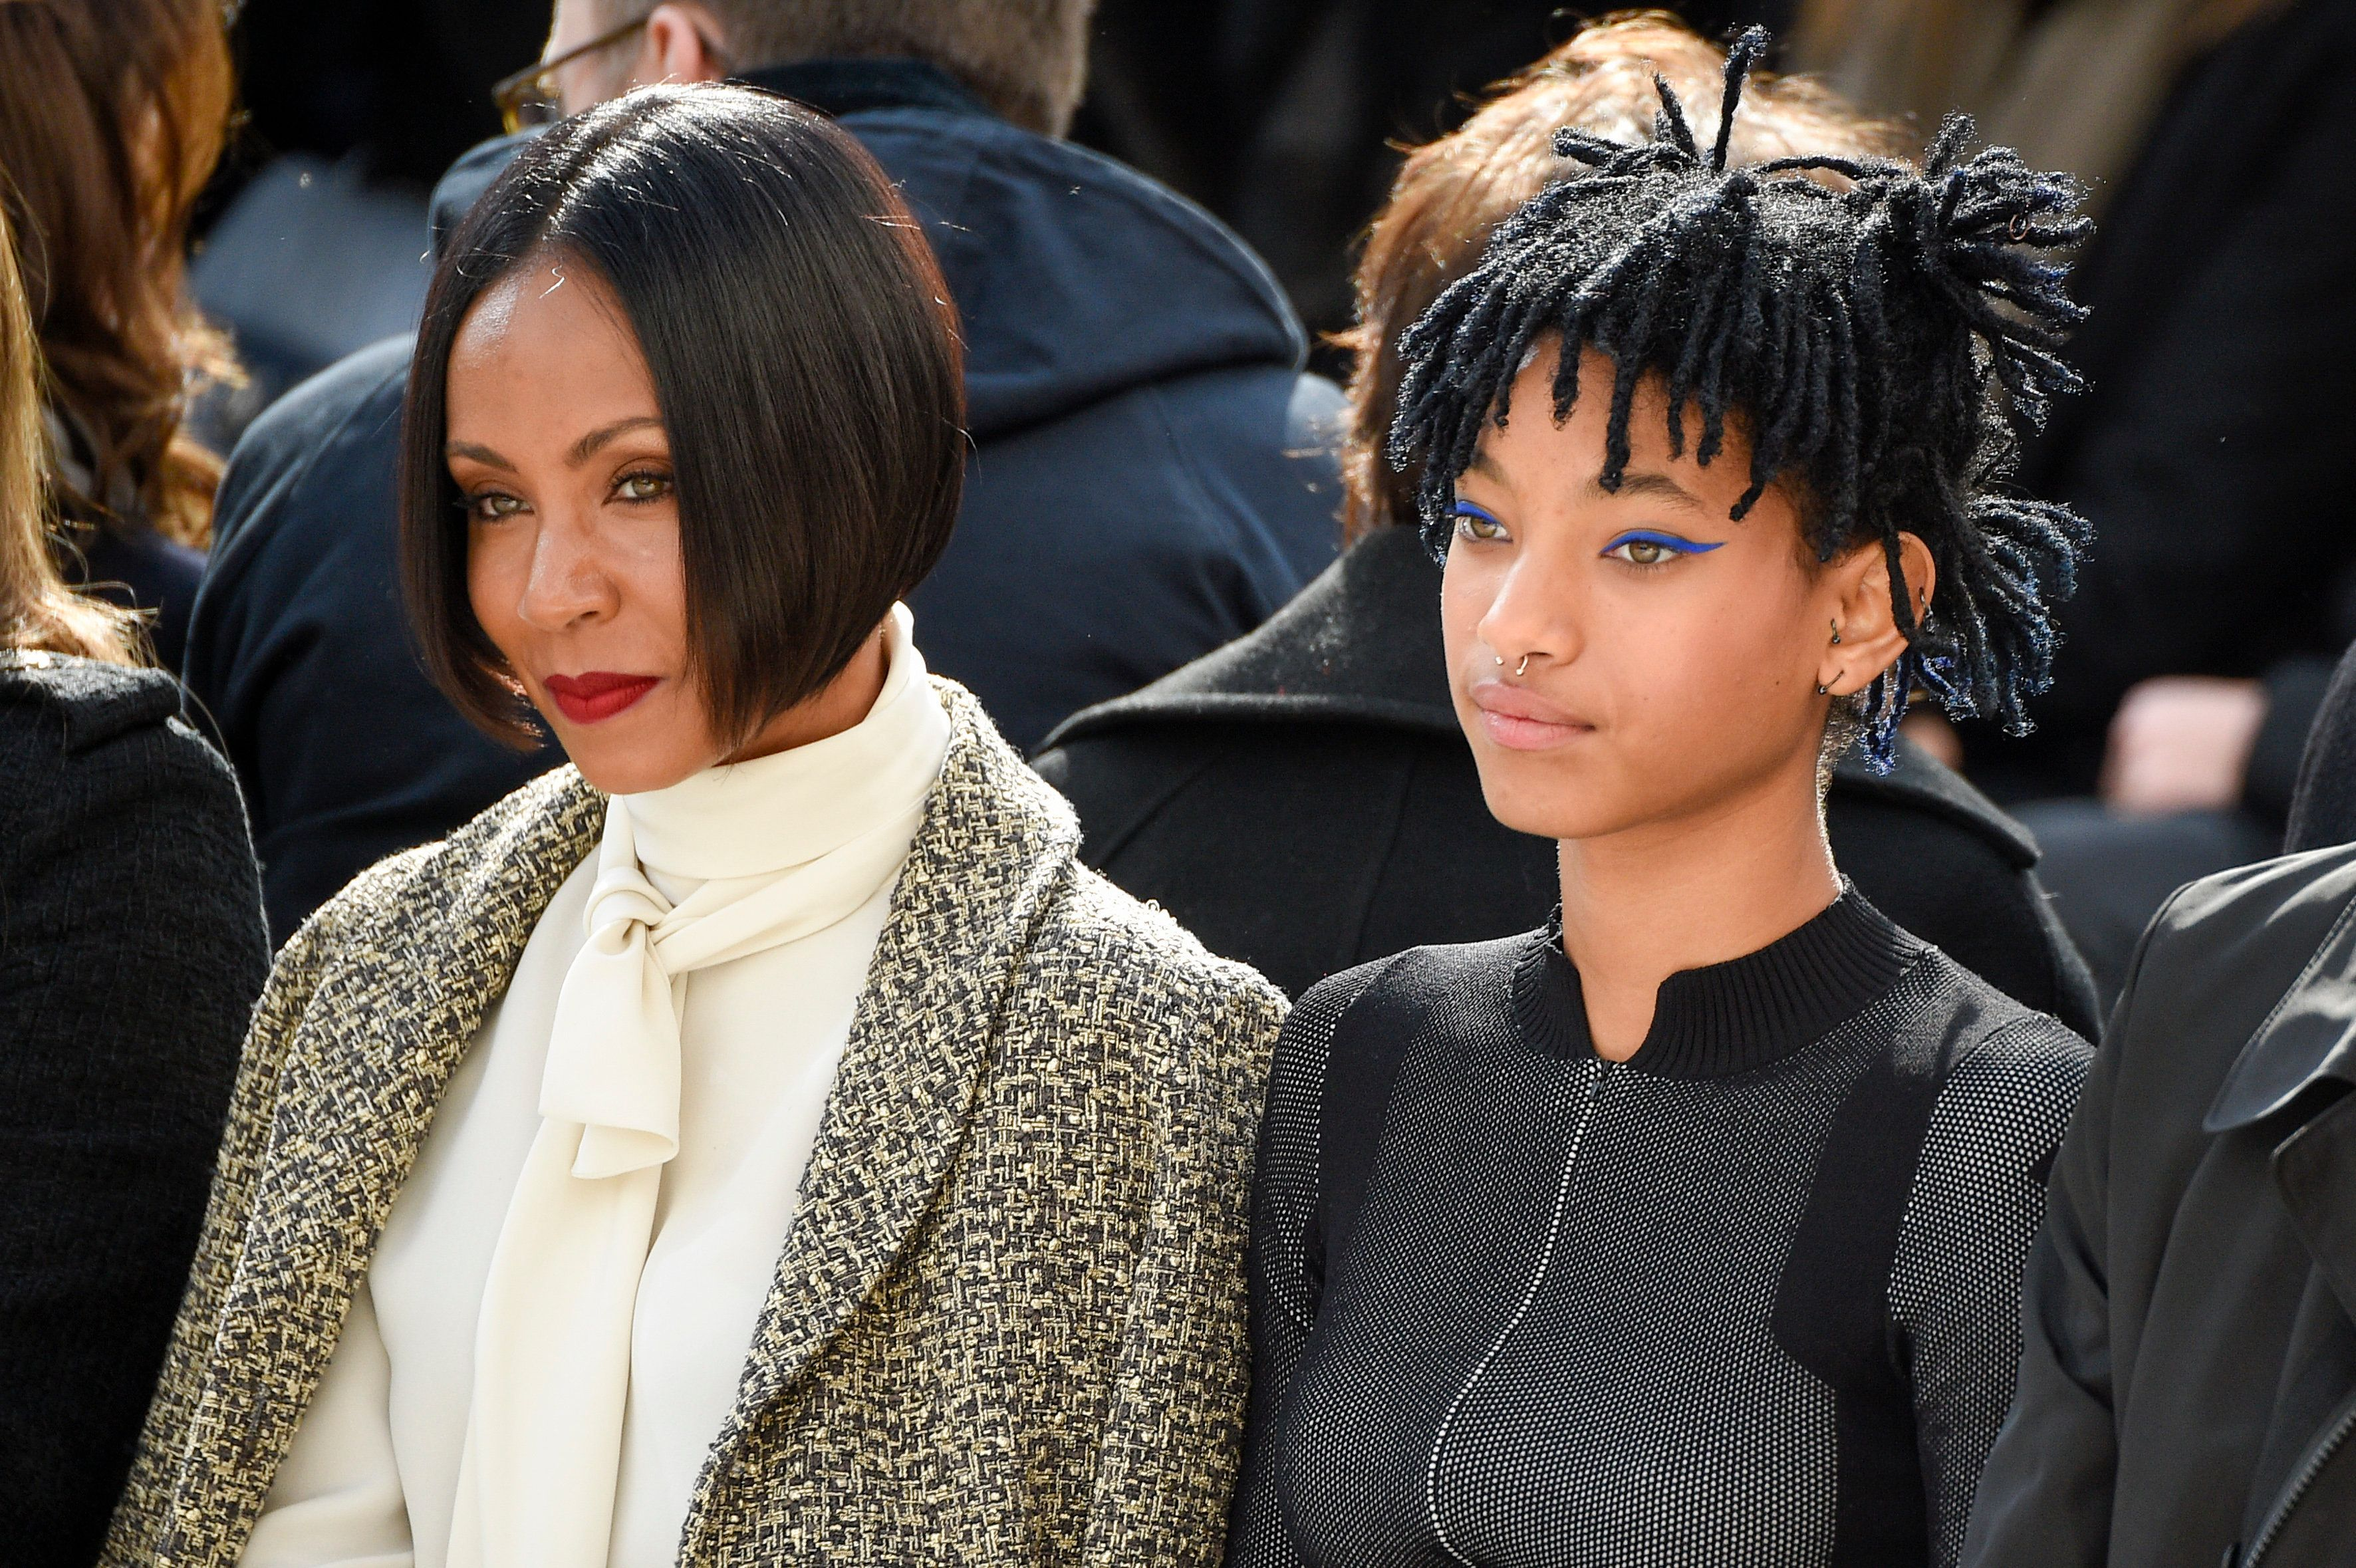 PARIS, FRANCE - MARCH 08:  Jada Pinkett Smith and Willow Smith attend the Chanel show as part of the Paris Fashion Week Womenswear Fall/Winter 2016/2017 on March 8, 2016 in Paris, France.  (Photo by Peter White/Getty Images)